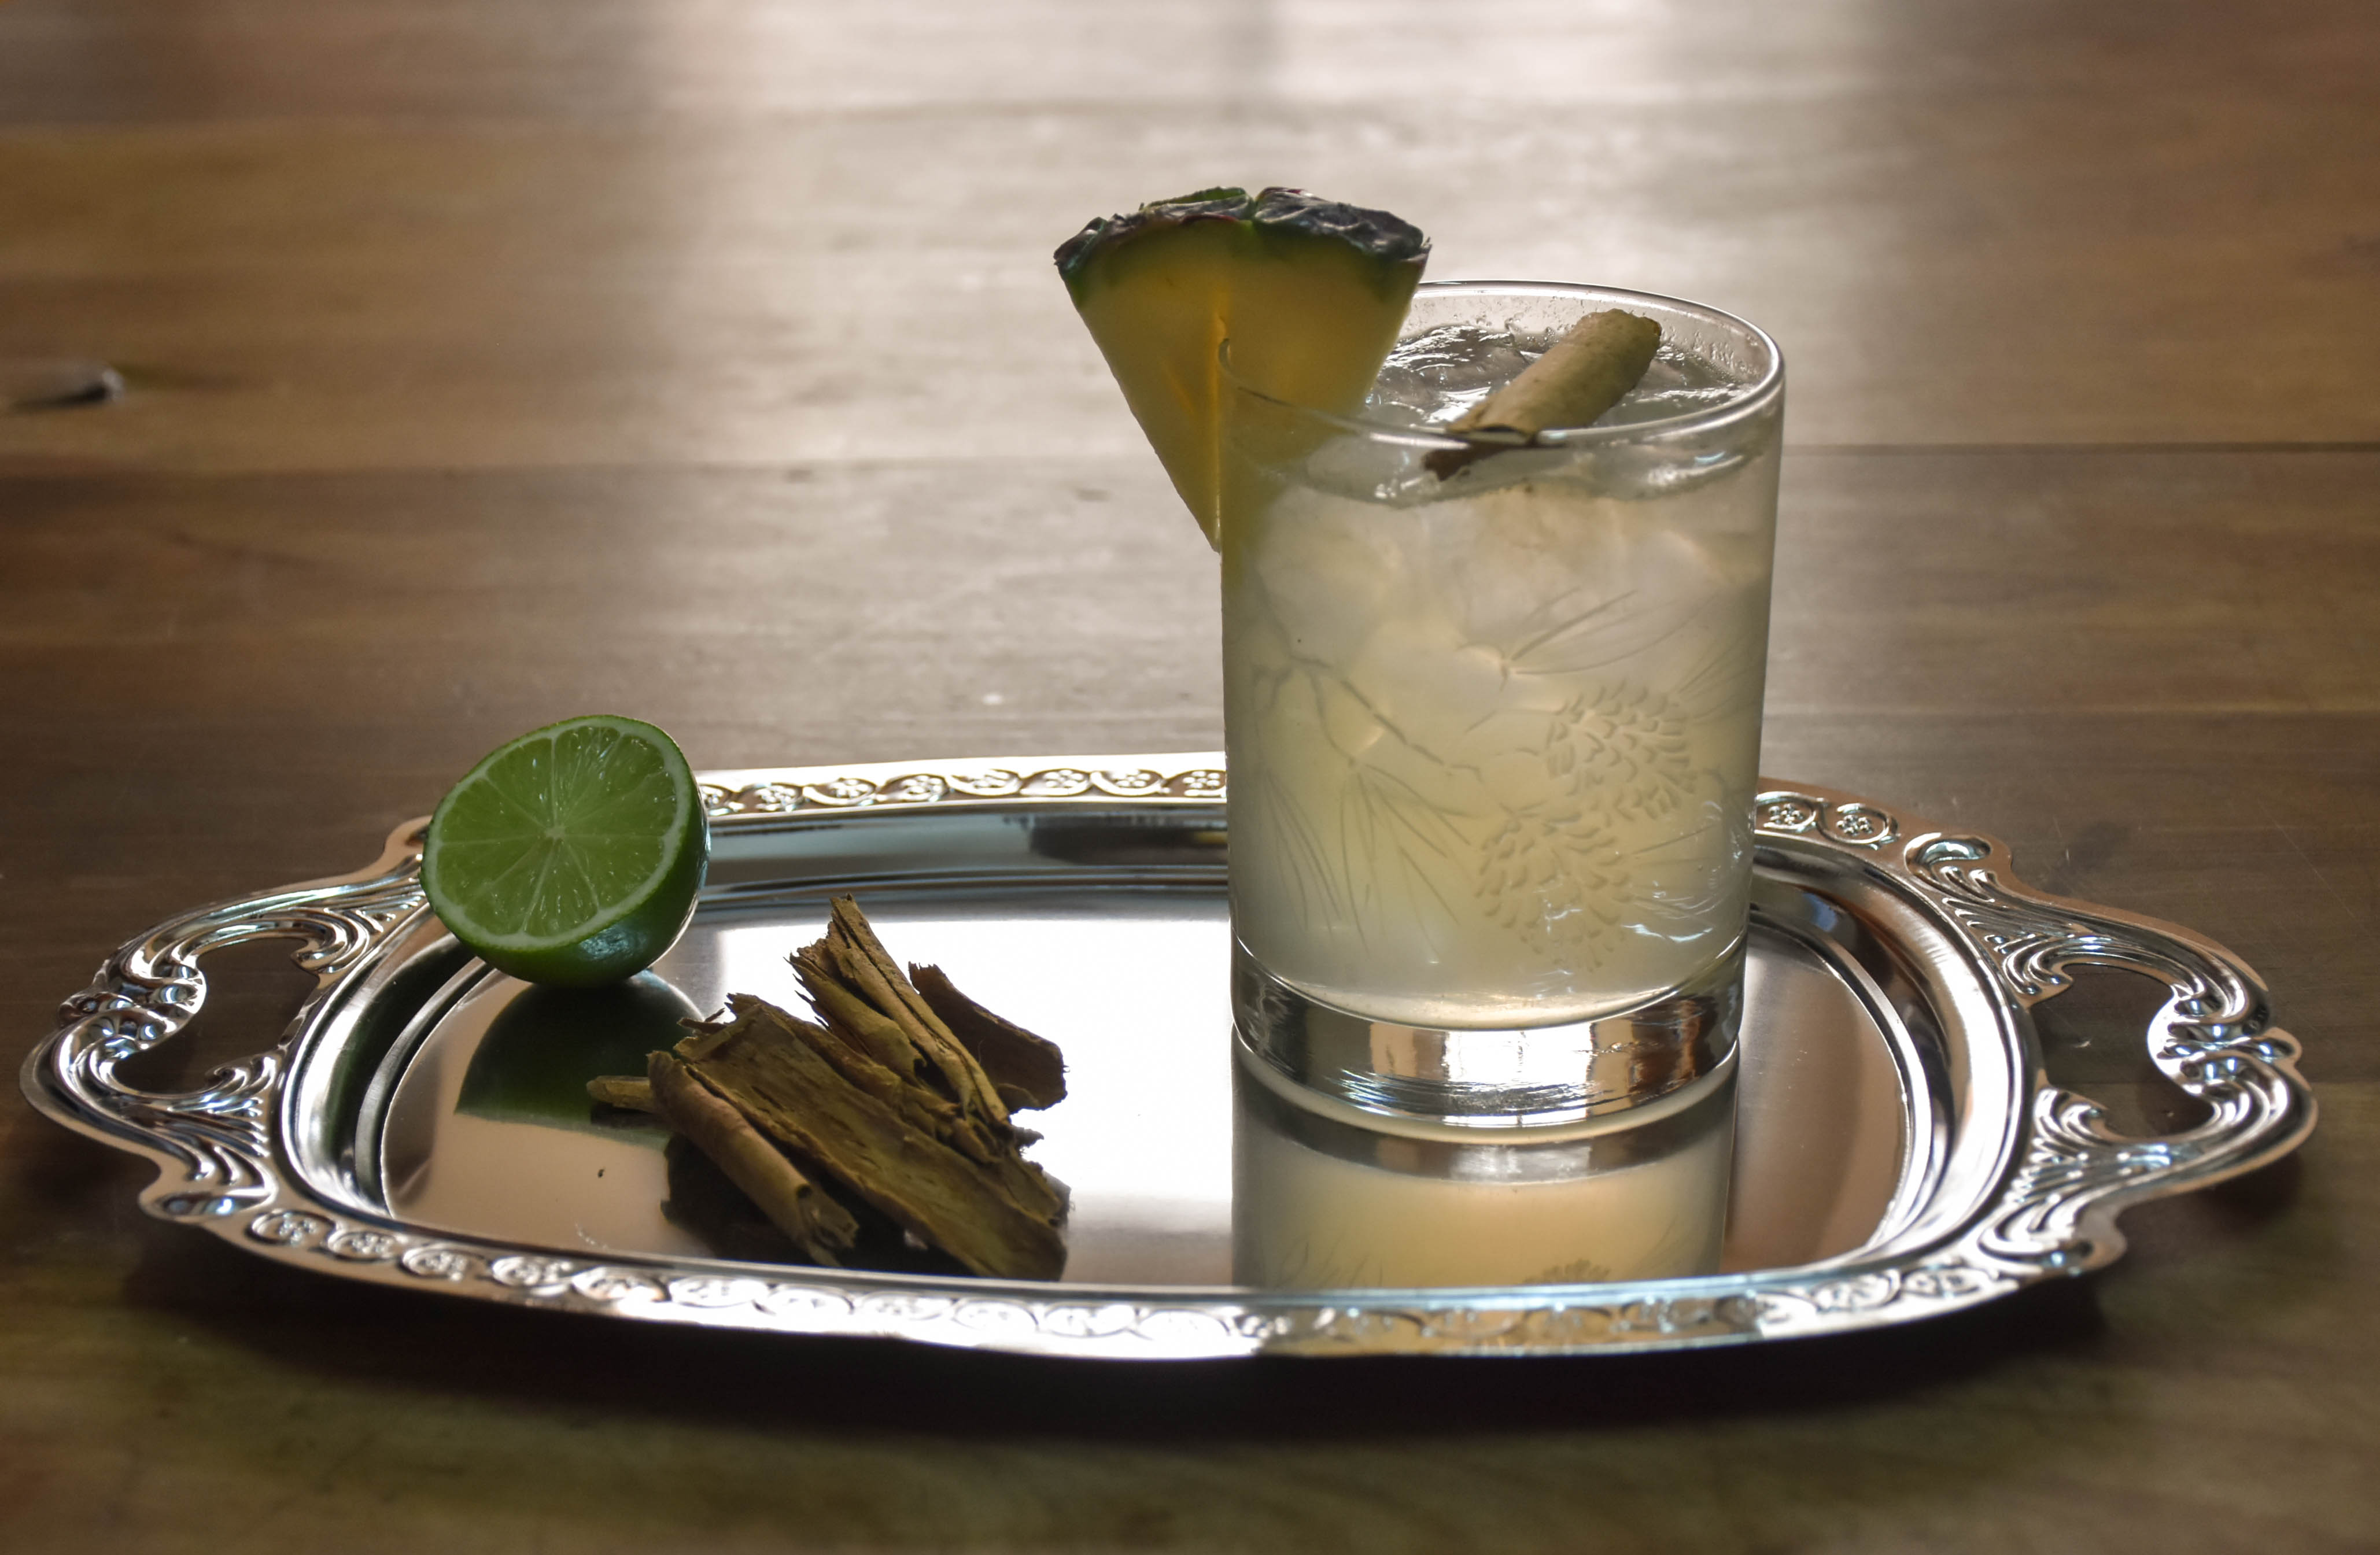 Cocktail recipe video: Winter gin and tonic